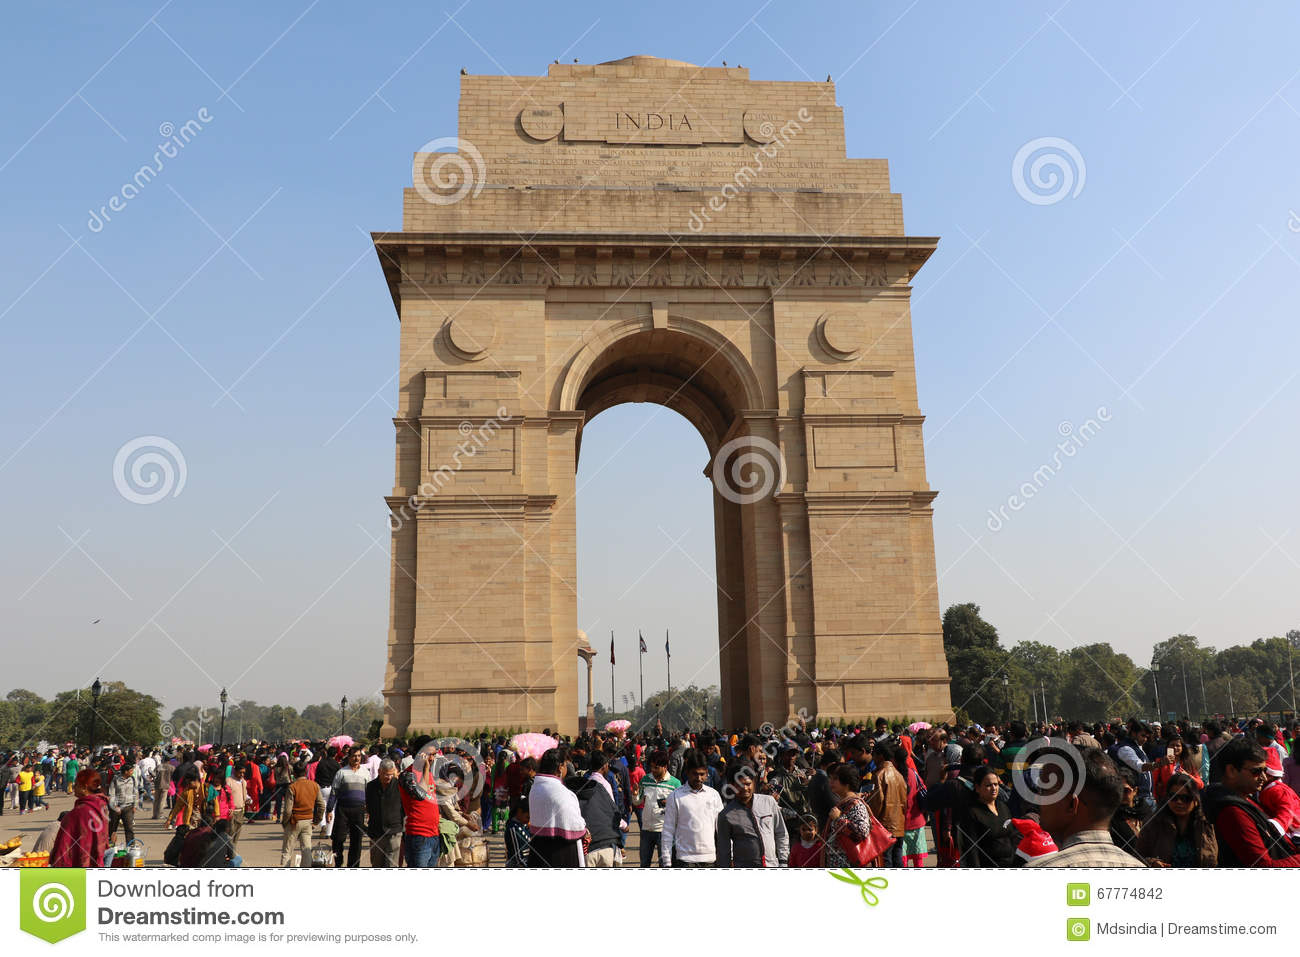 india gate essey in hindi Short essay on 'independence day: 15 august' of india in hindi | 'swatantrata diwas' par nibandh (125 words) short essay on 'taj mahal' in hindi | 'taj mahal' par nibandh (100 words) tuesday, september 3, 2013.